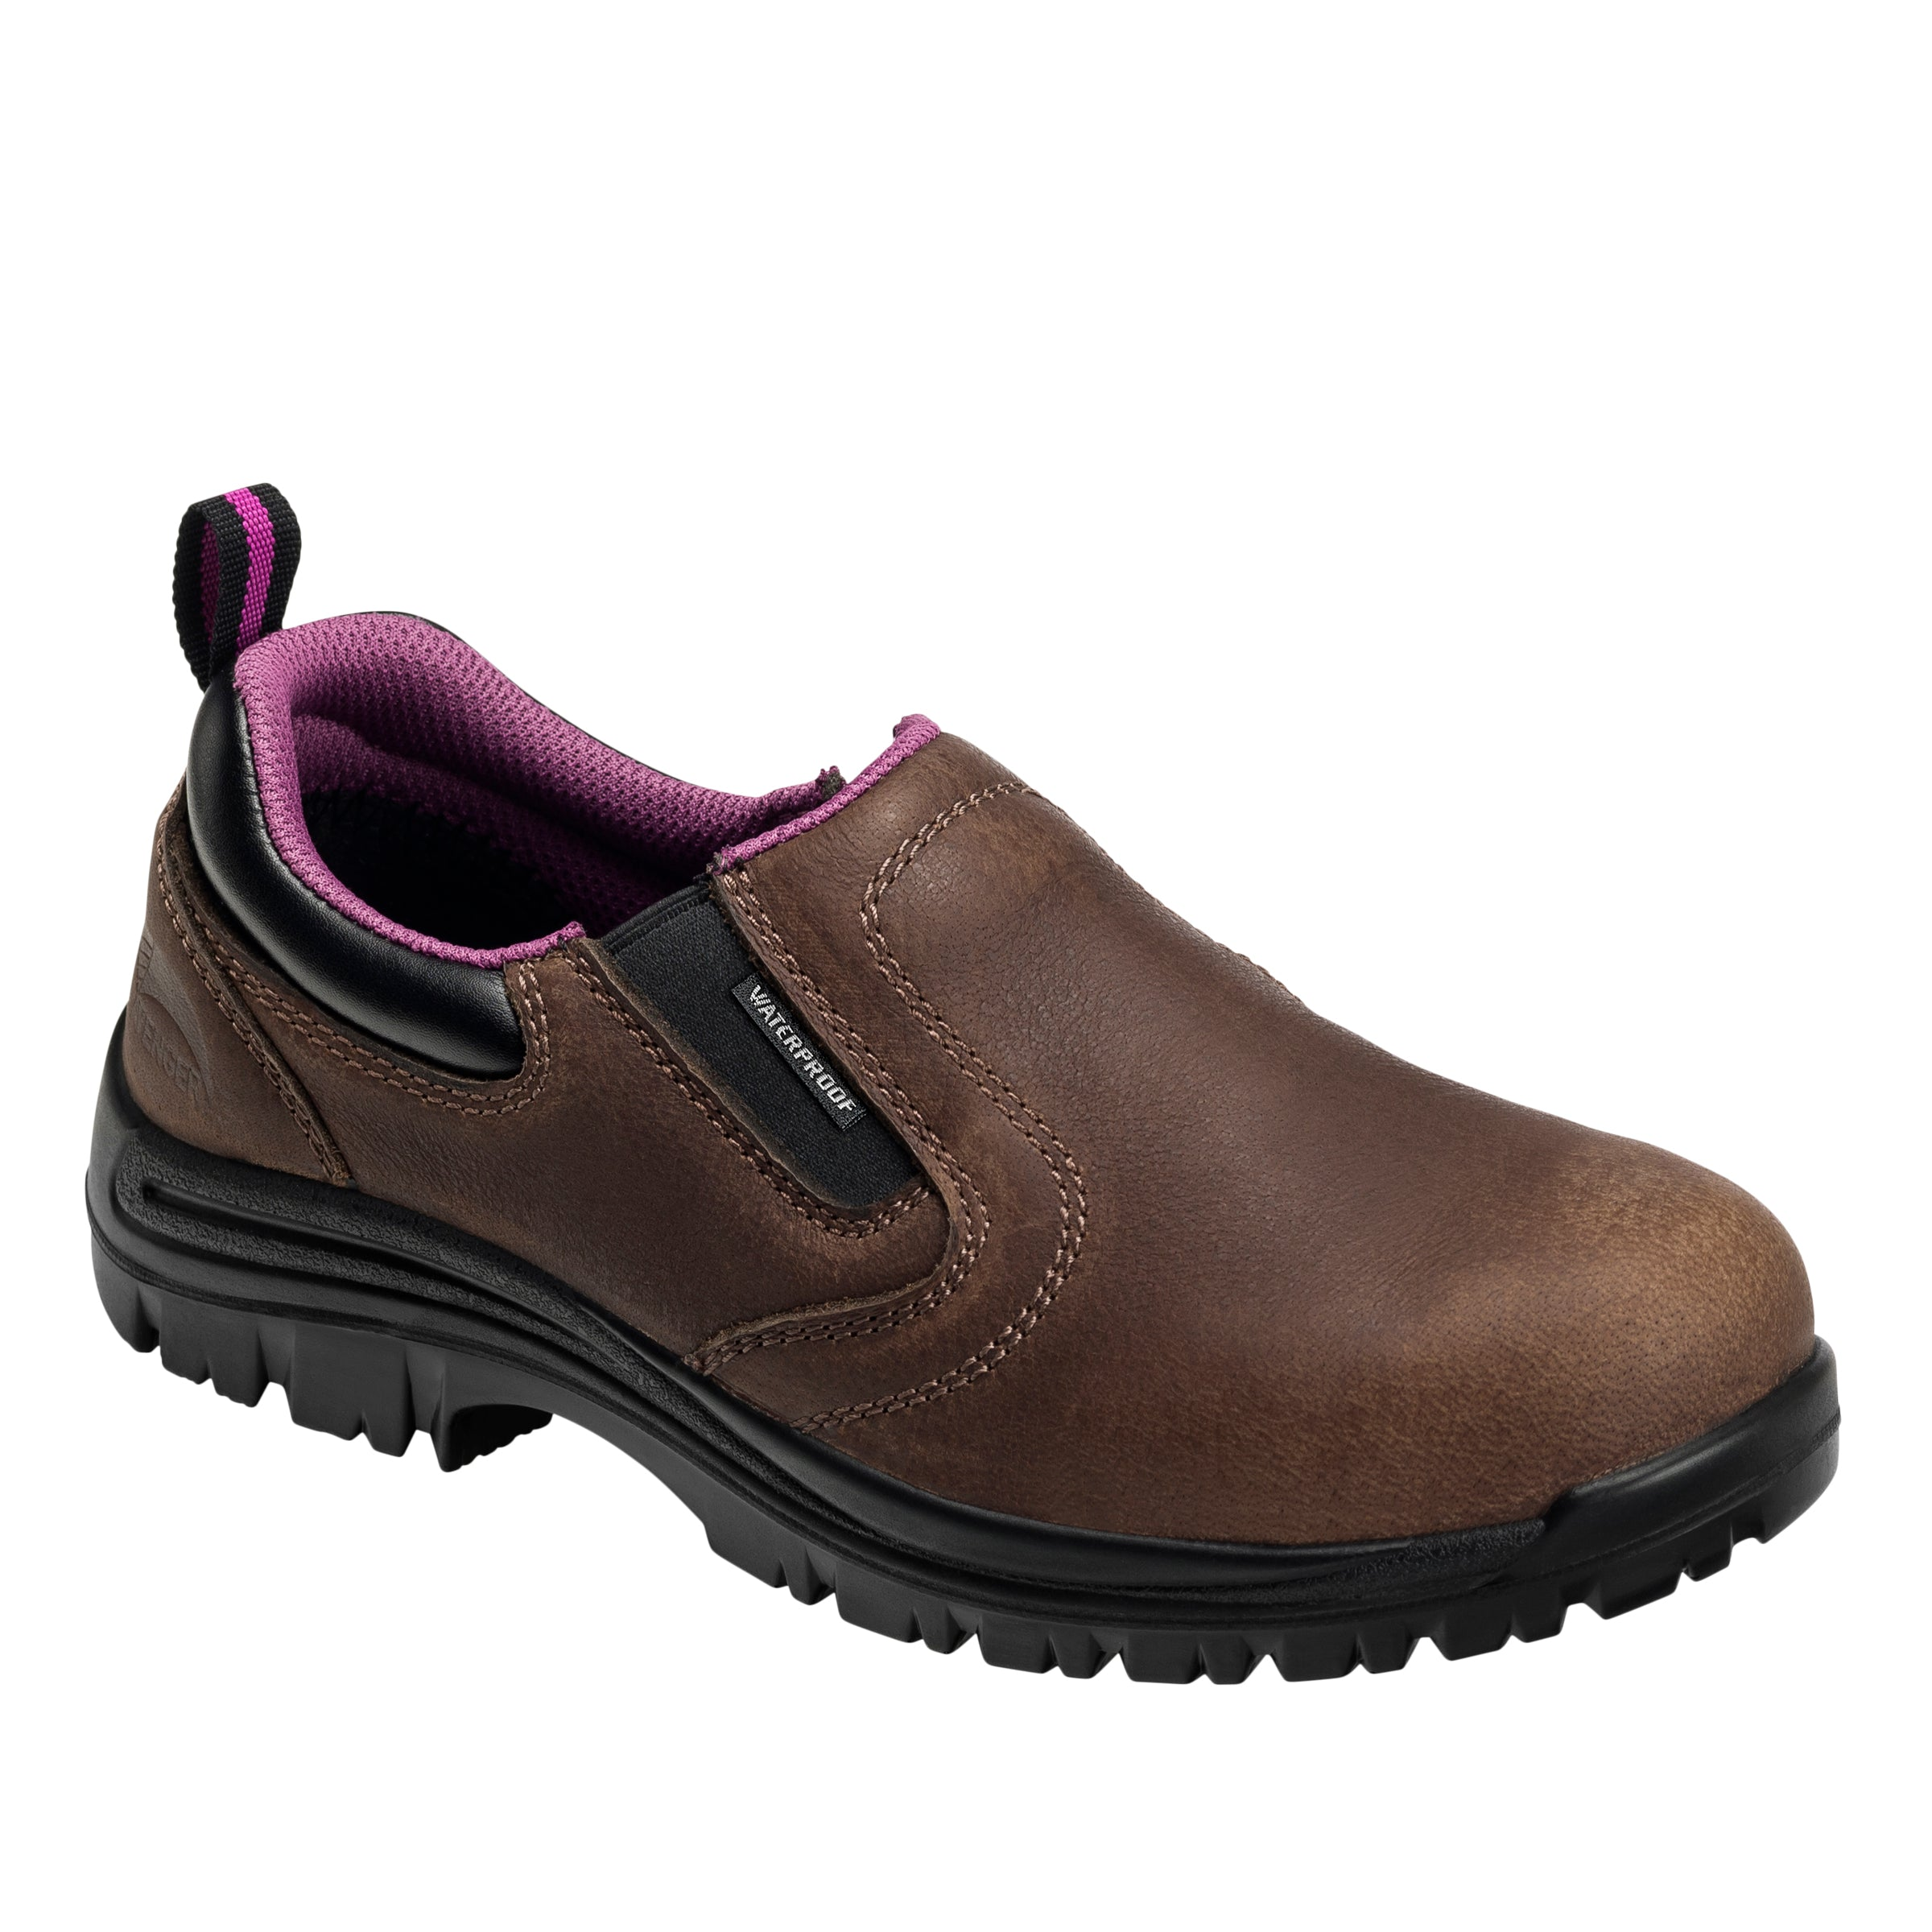 'Avenger' Women's EH WP Comp Toe Slip On - Full Grain Brown